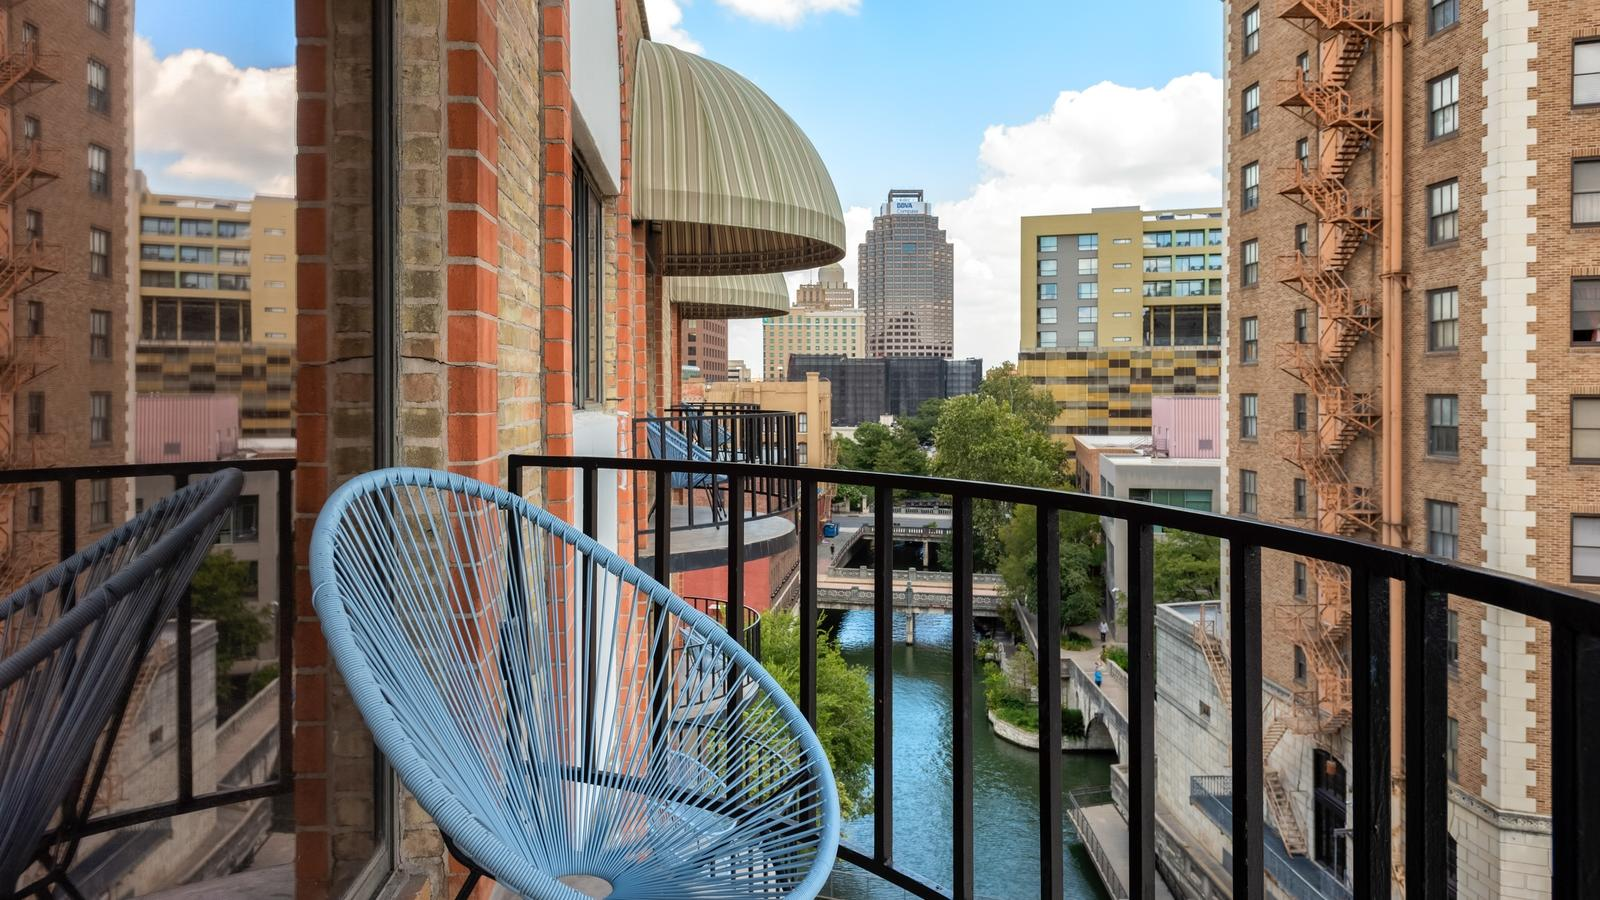 Chair on balcony with view of buildings along river